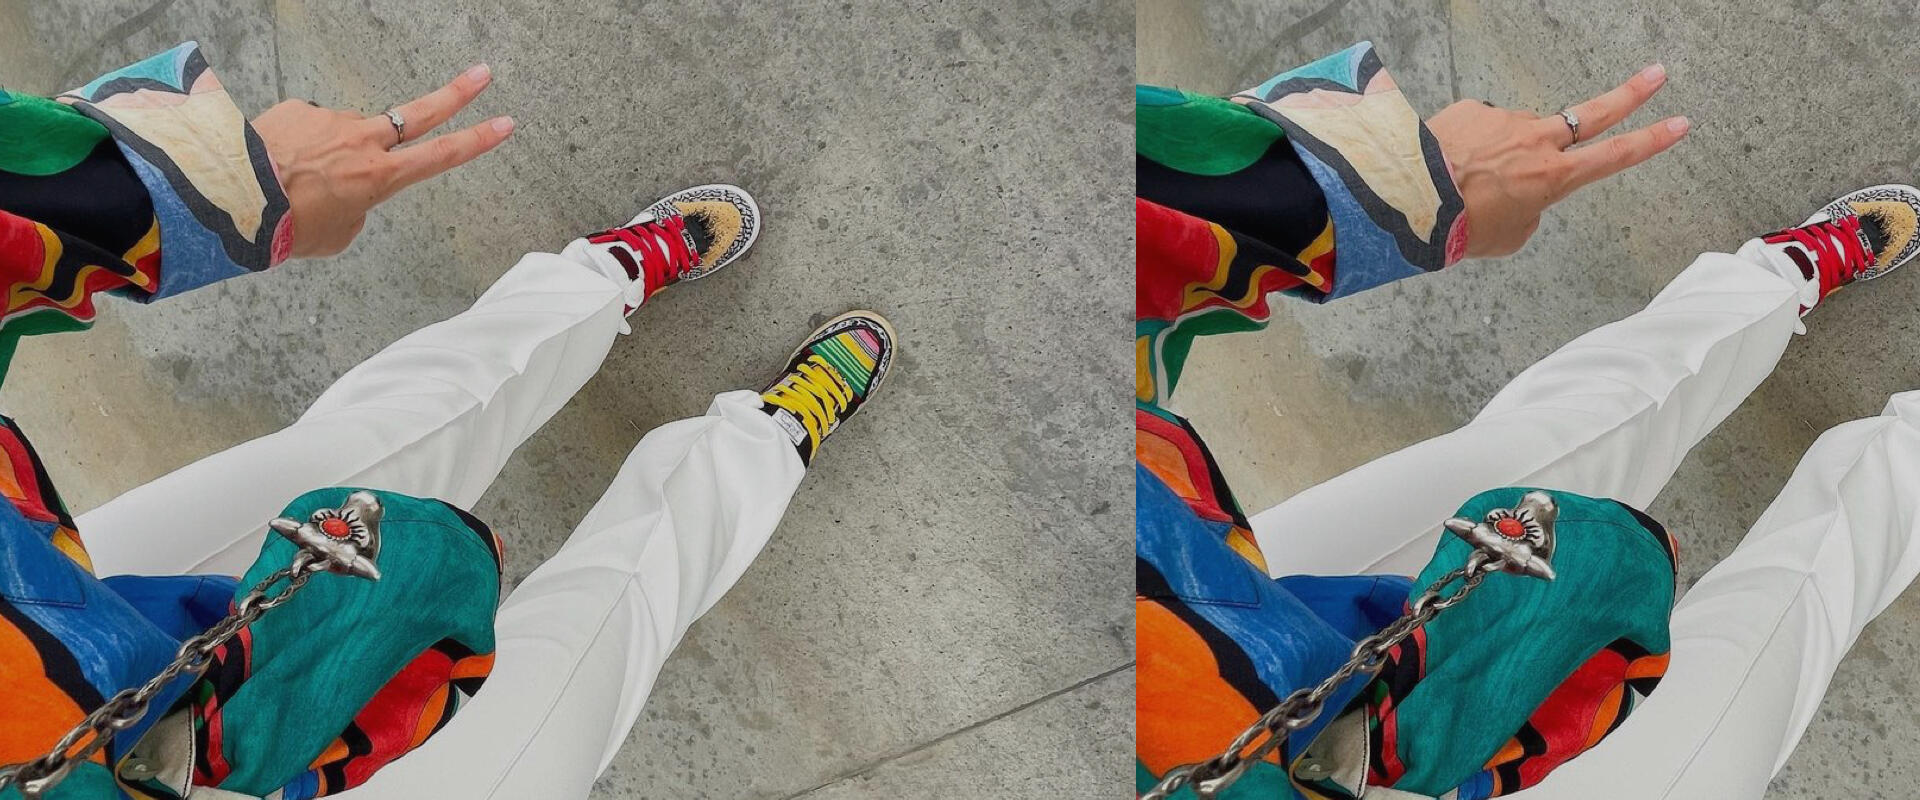 This Instagram creative owns more sneakers than we can count but she seems to love them all